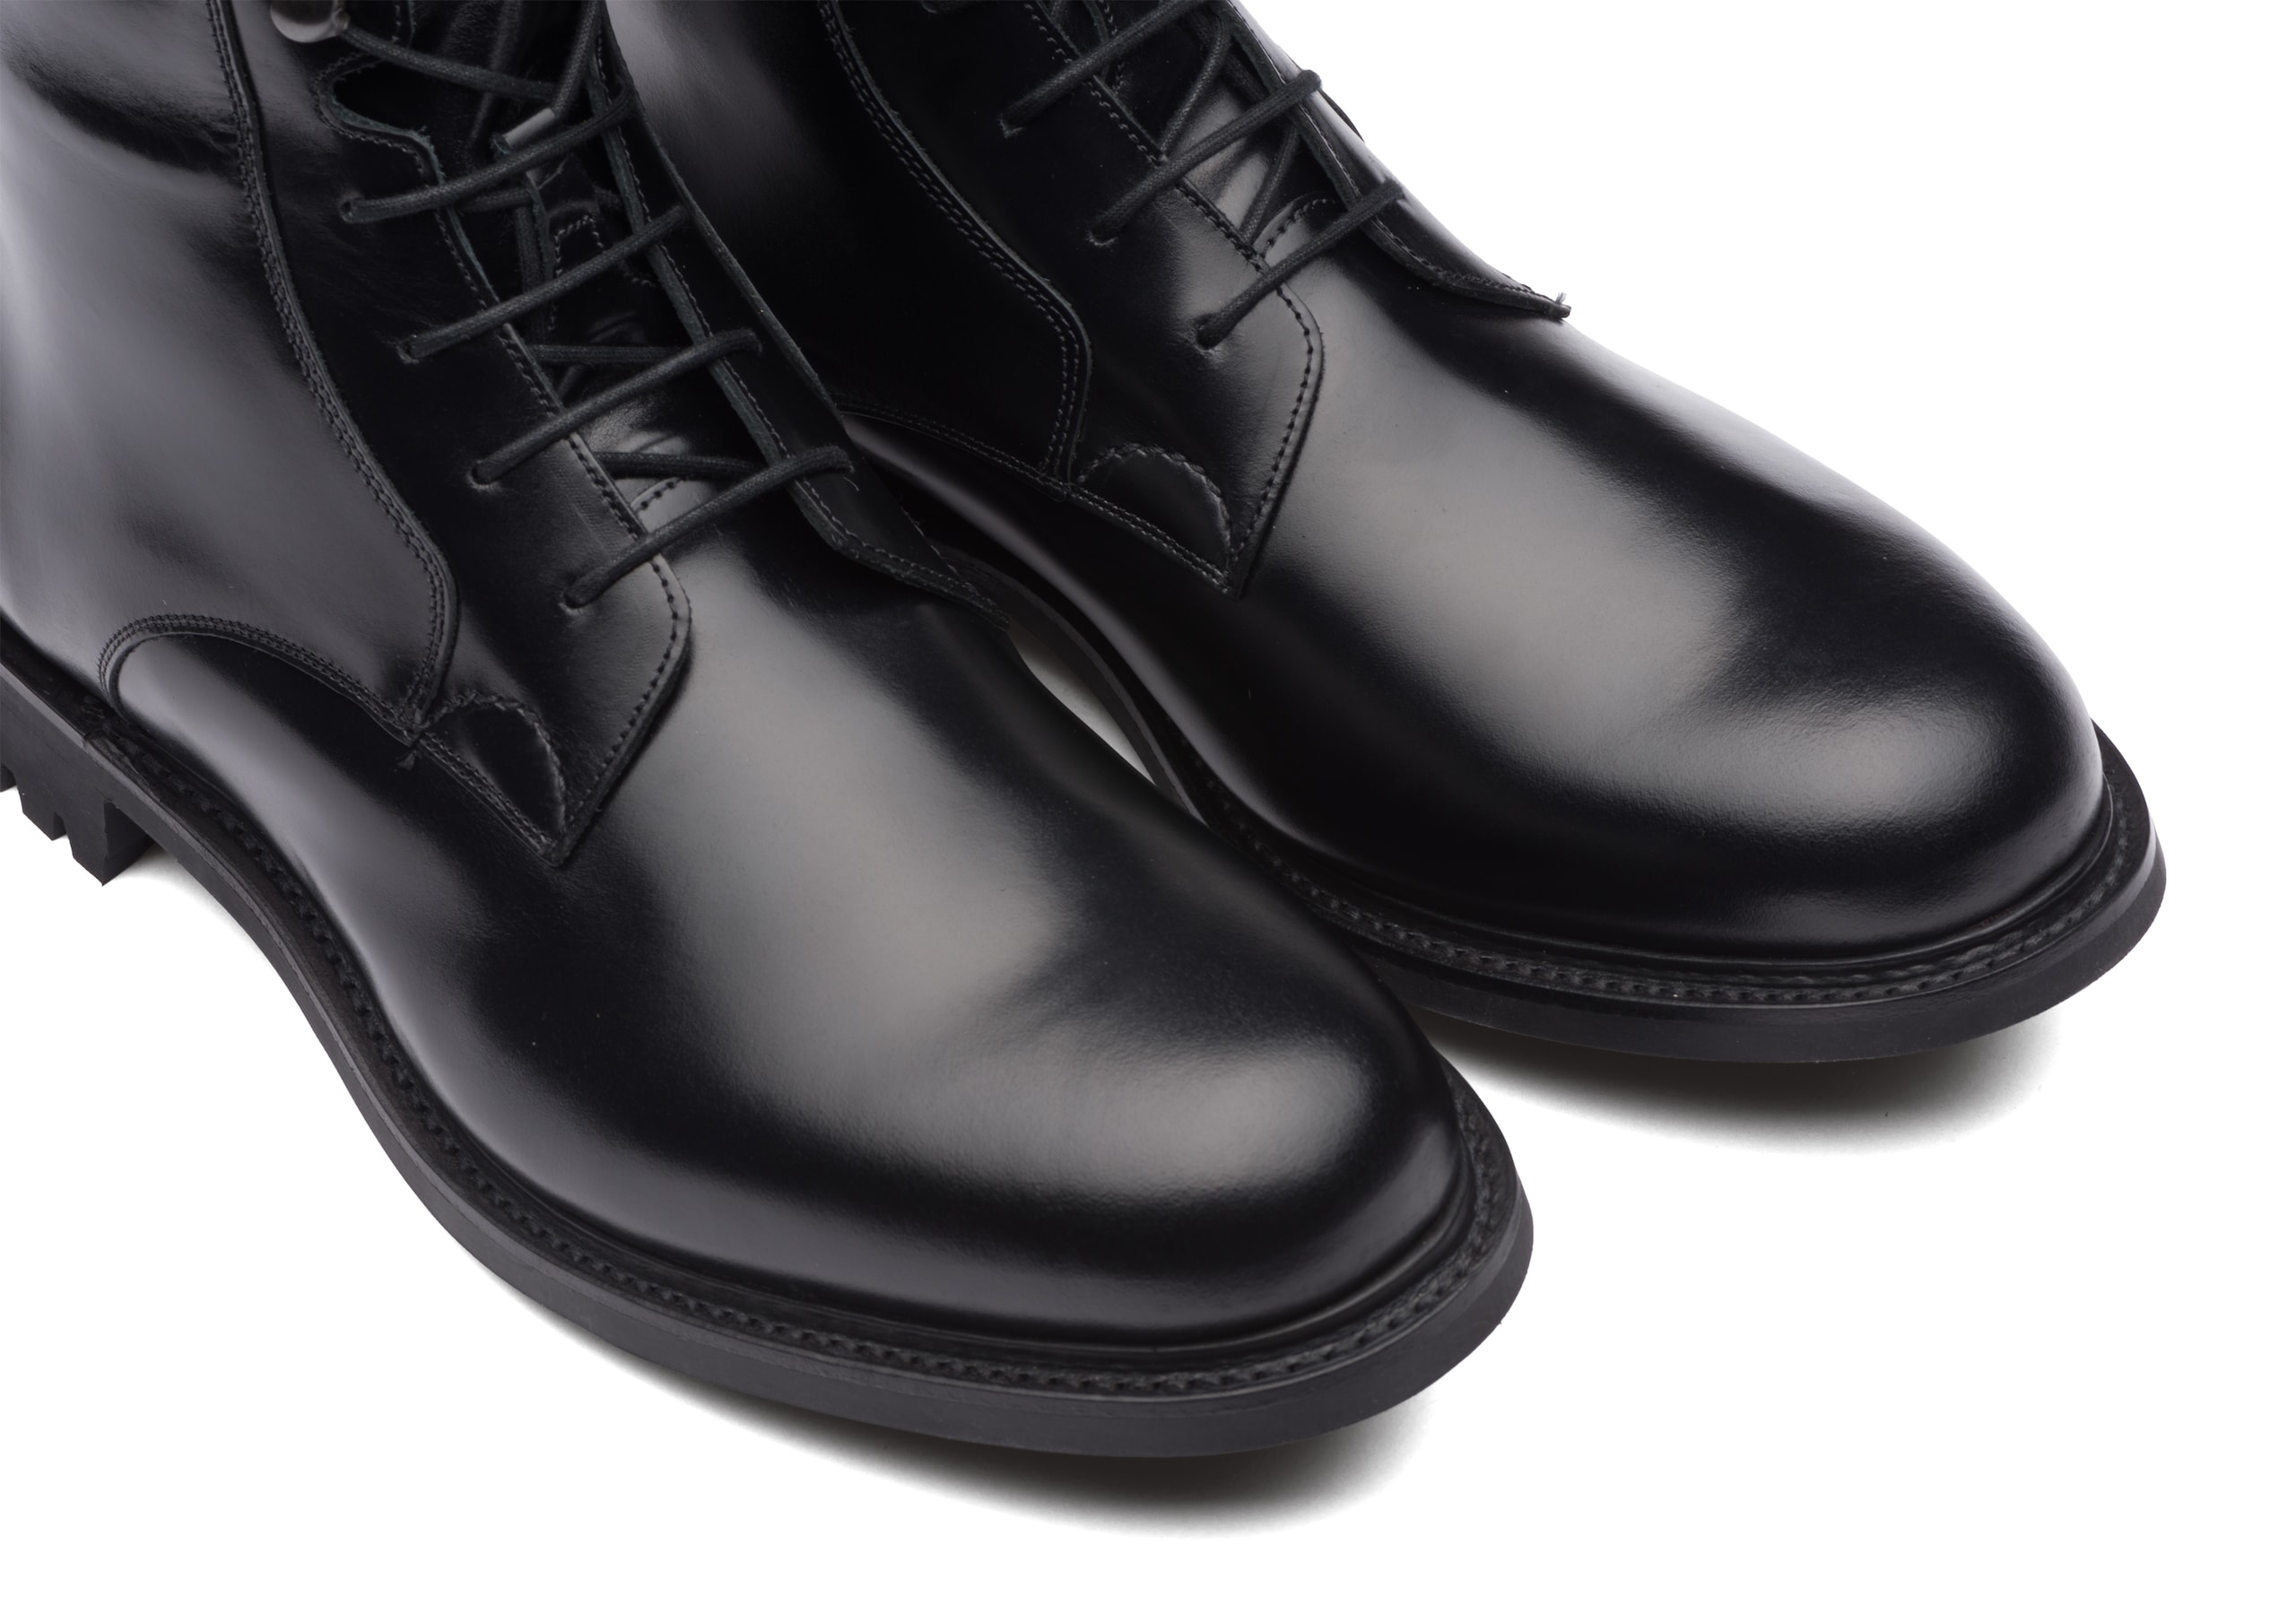 Wick fur Church's Calf Leather Lace-Up Boot Black